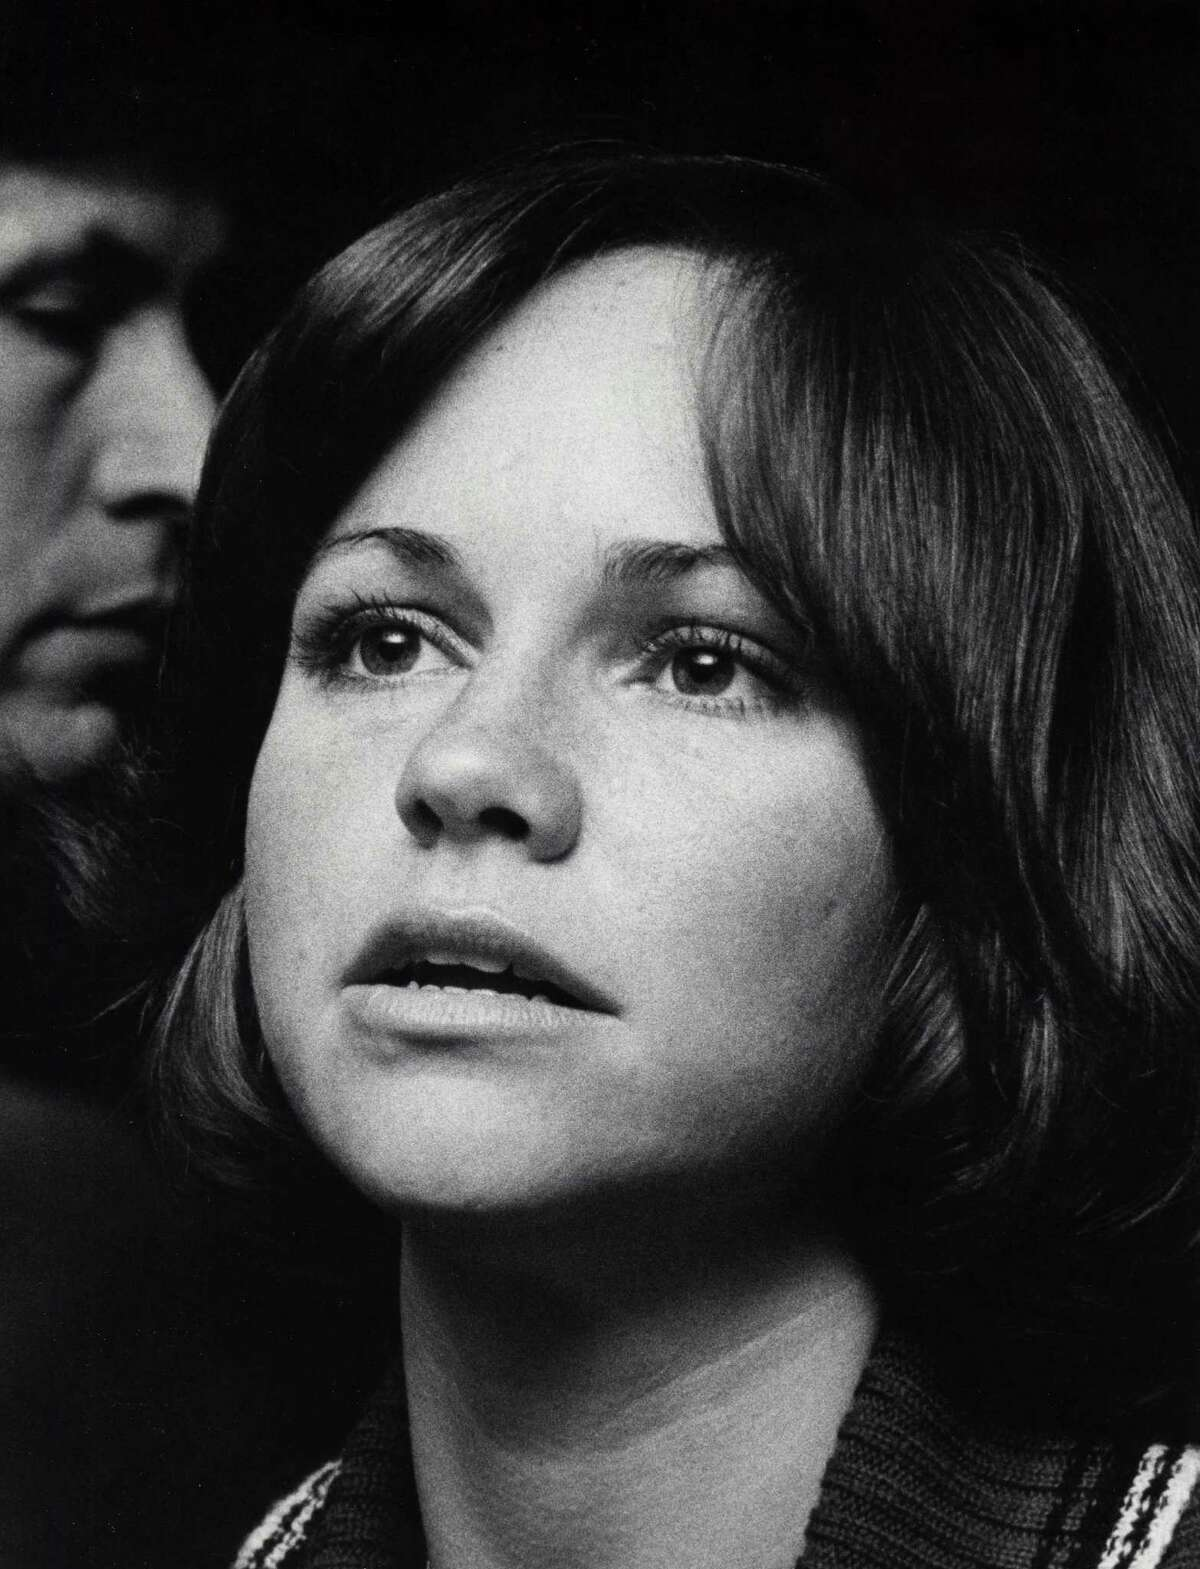 Sally Field (her real name), born Nov. 6, 1946 in Los Angeles, is one of the most overlooked and underappreciated American actresses alive despite two Oscars, two Golden Globes, three Emmys and too many nominations to list here. This photo is from 1974, when she was 27.